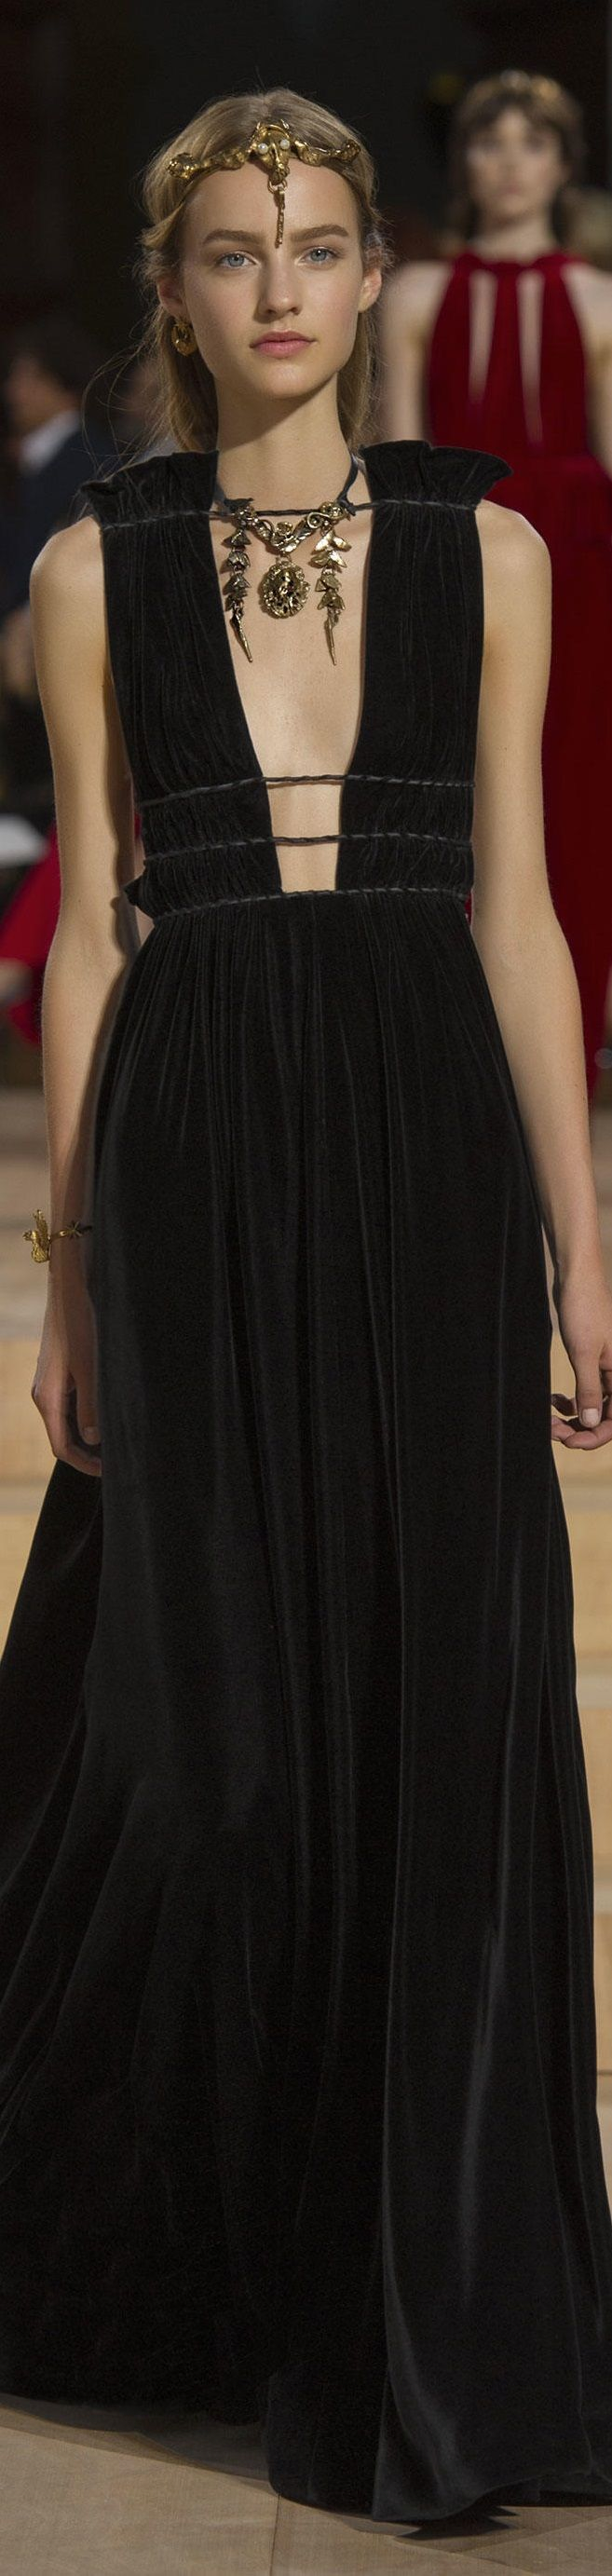 Valentino FW 2015 couture runway. Luxury, fashion, weddings, bridal style, desig...